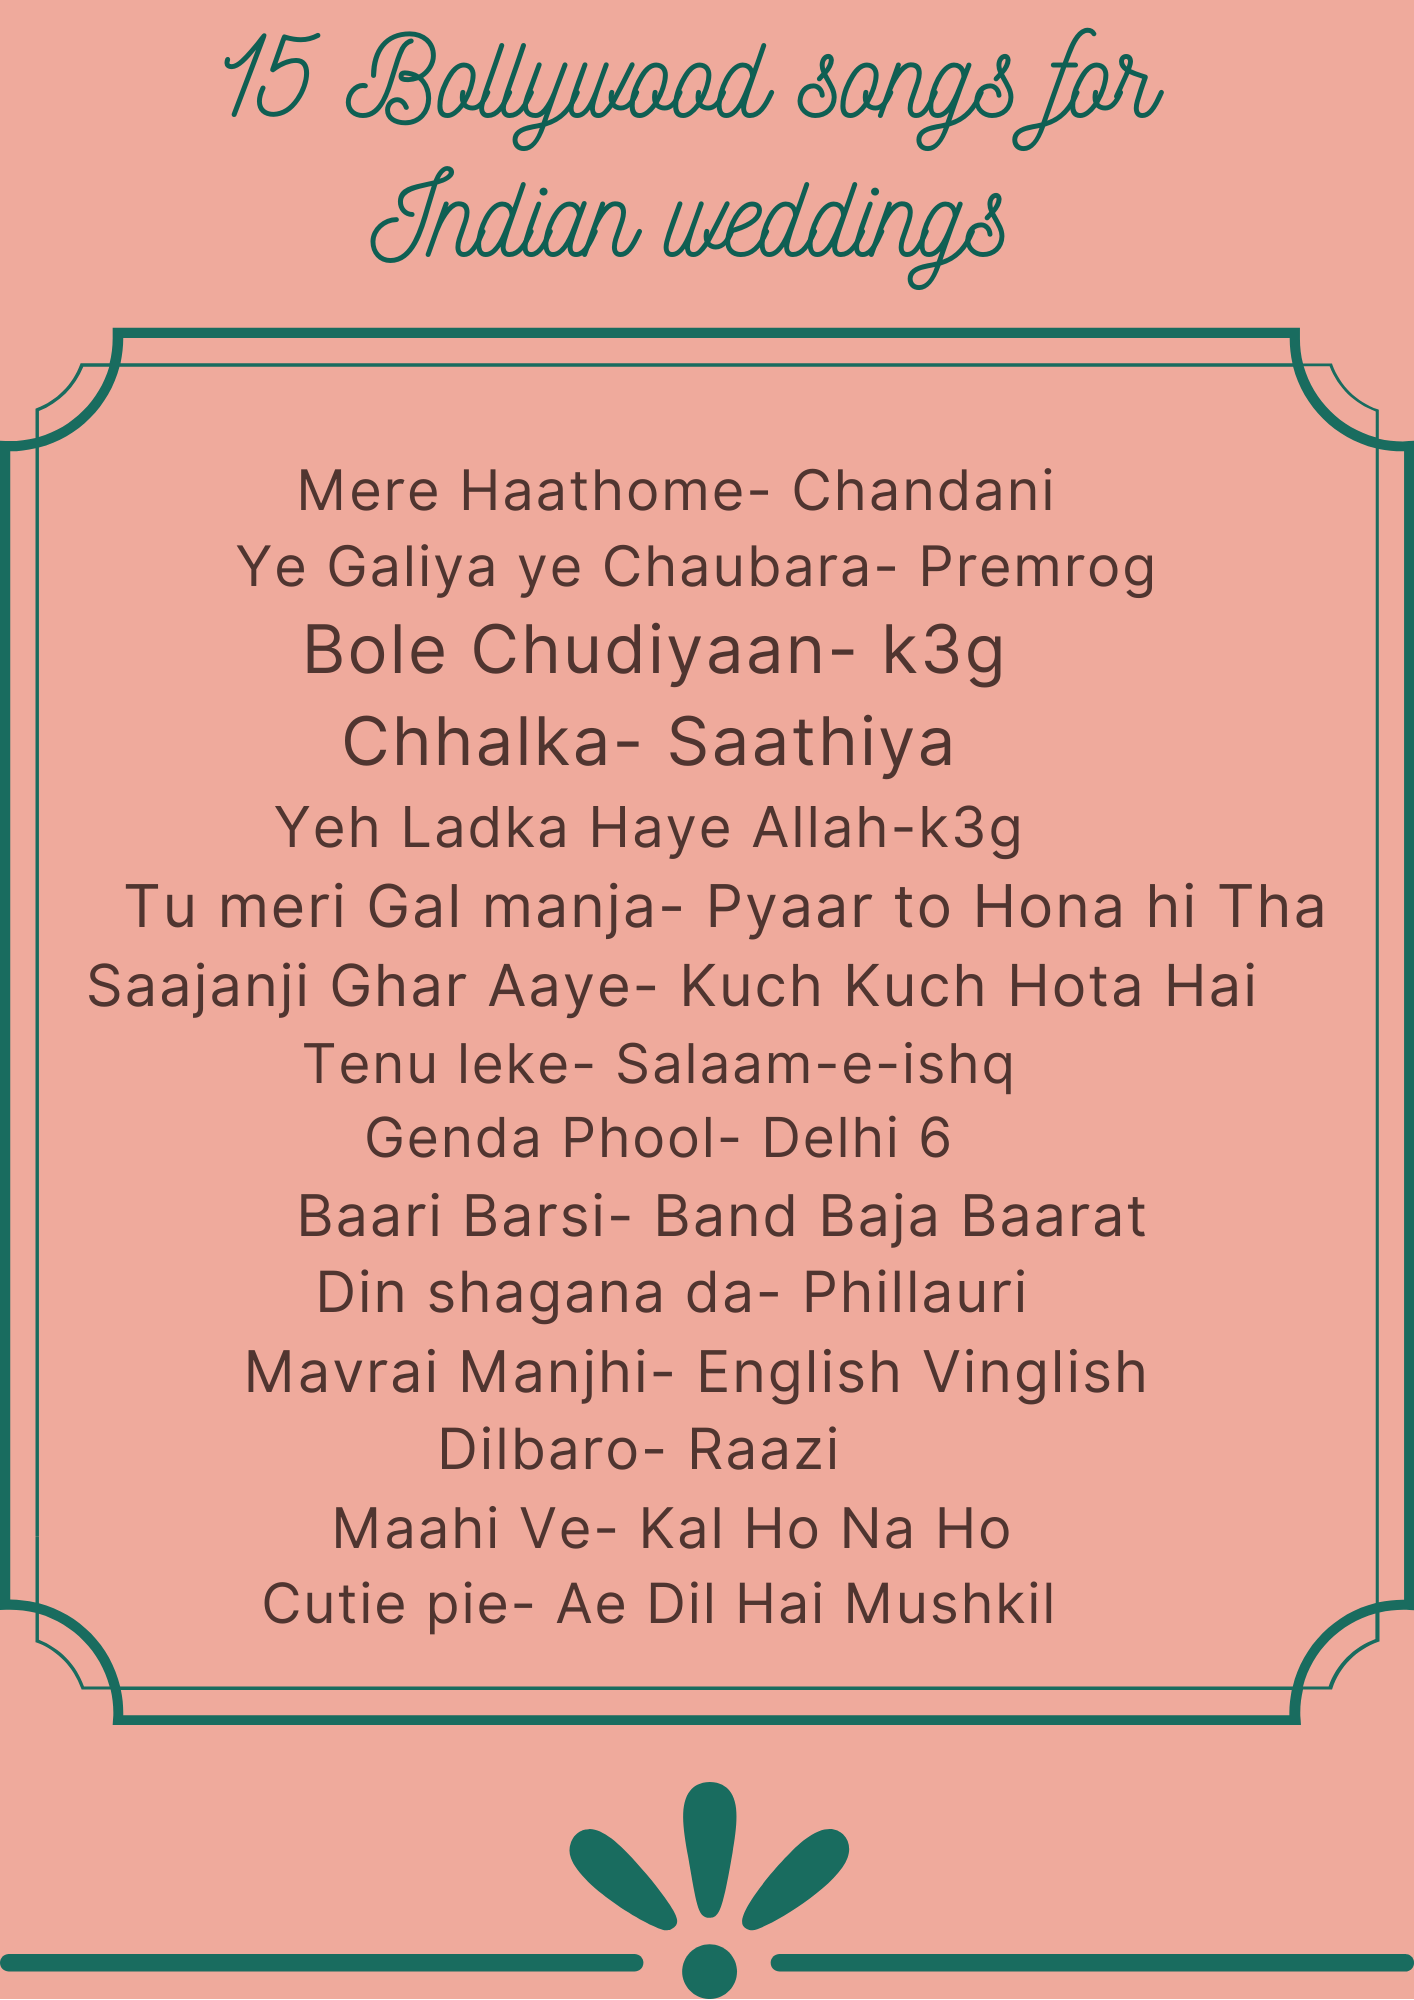 Bollywood Songs For Indian Weddings Indian Wedding Songs Wedding Song List Bollywood Songs